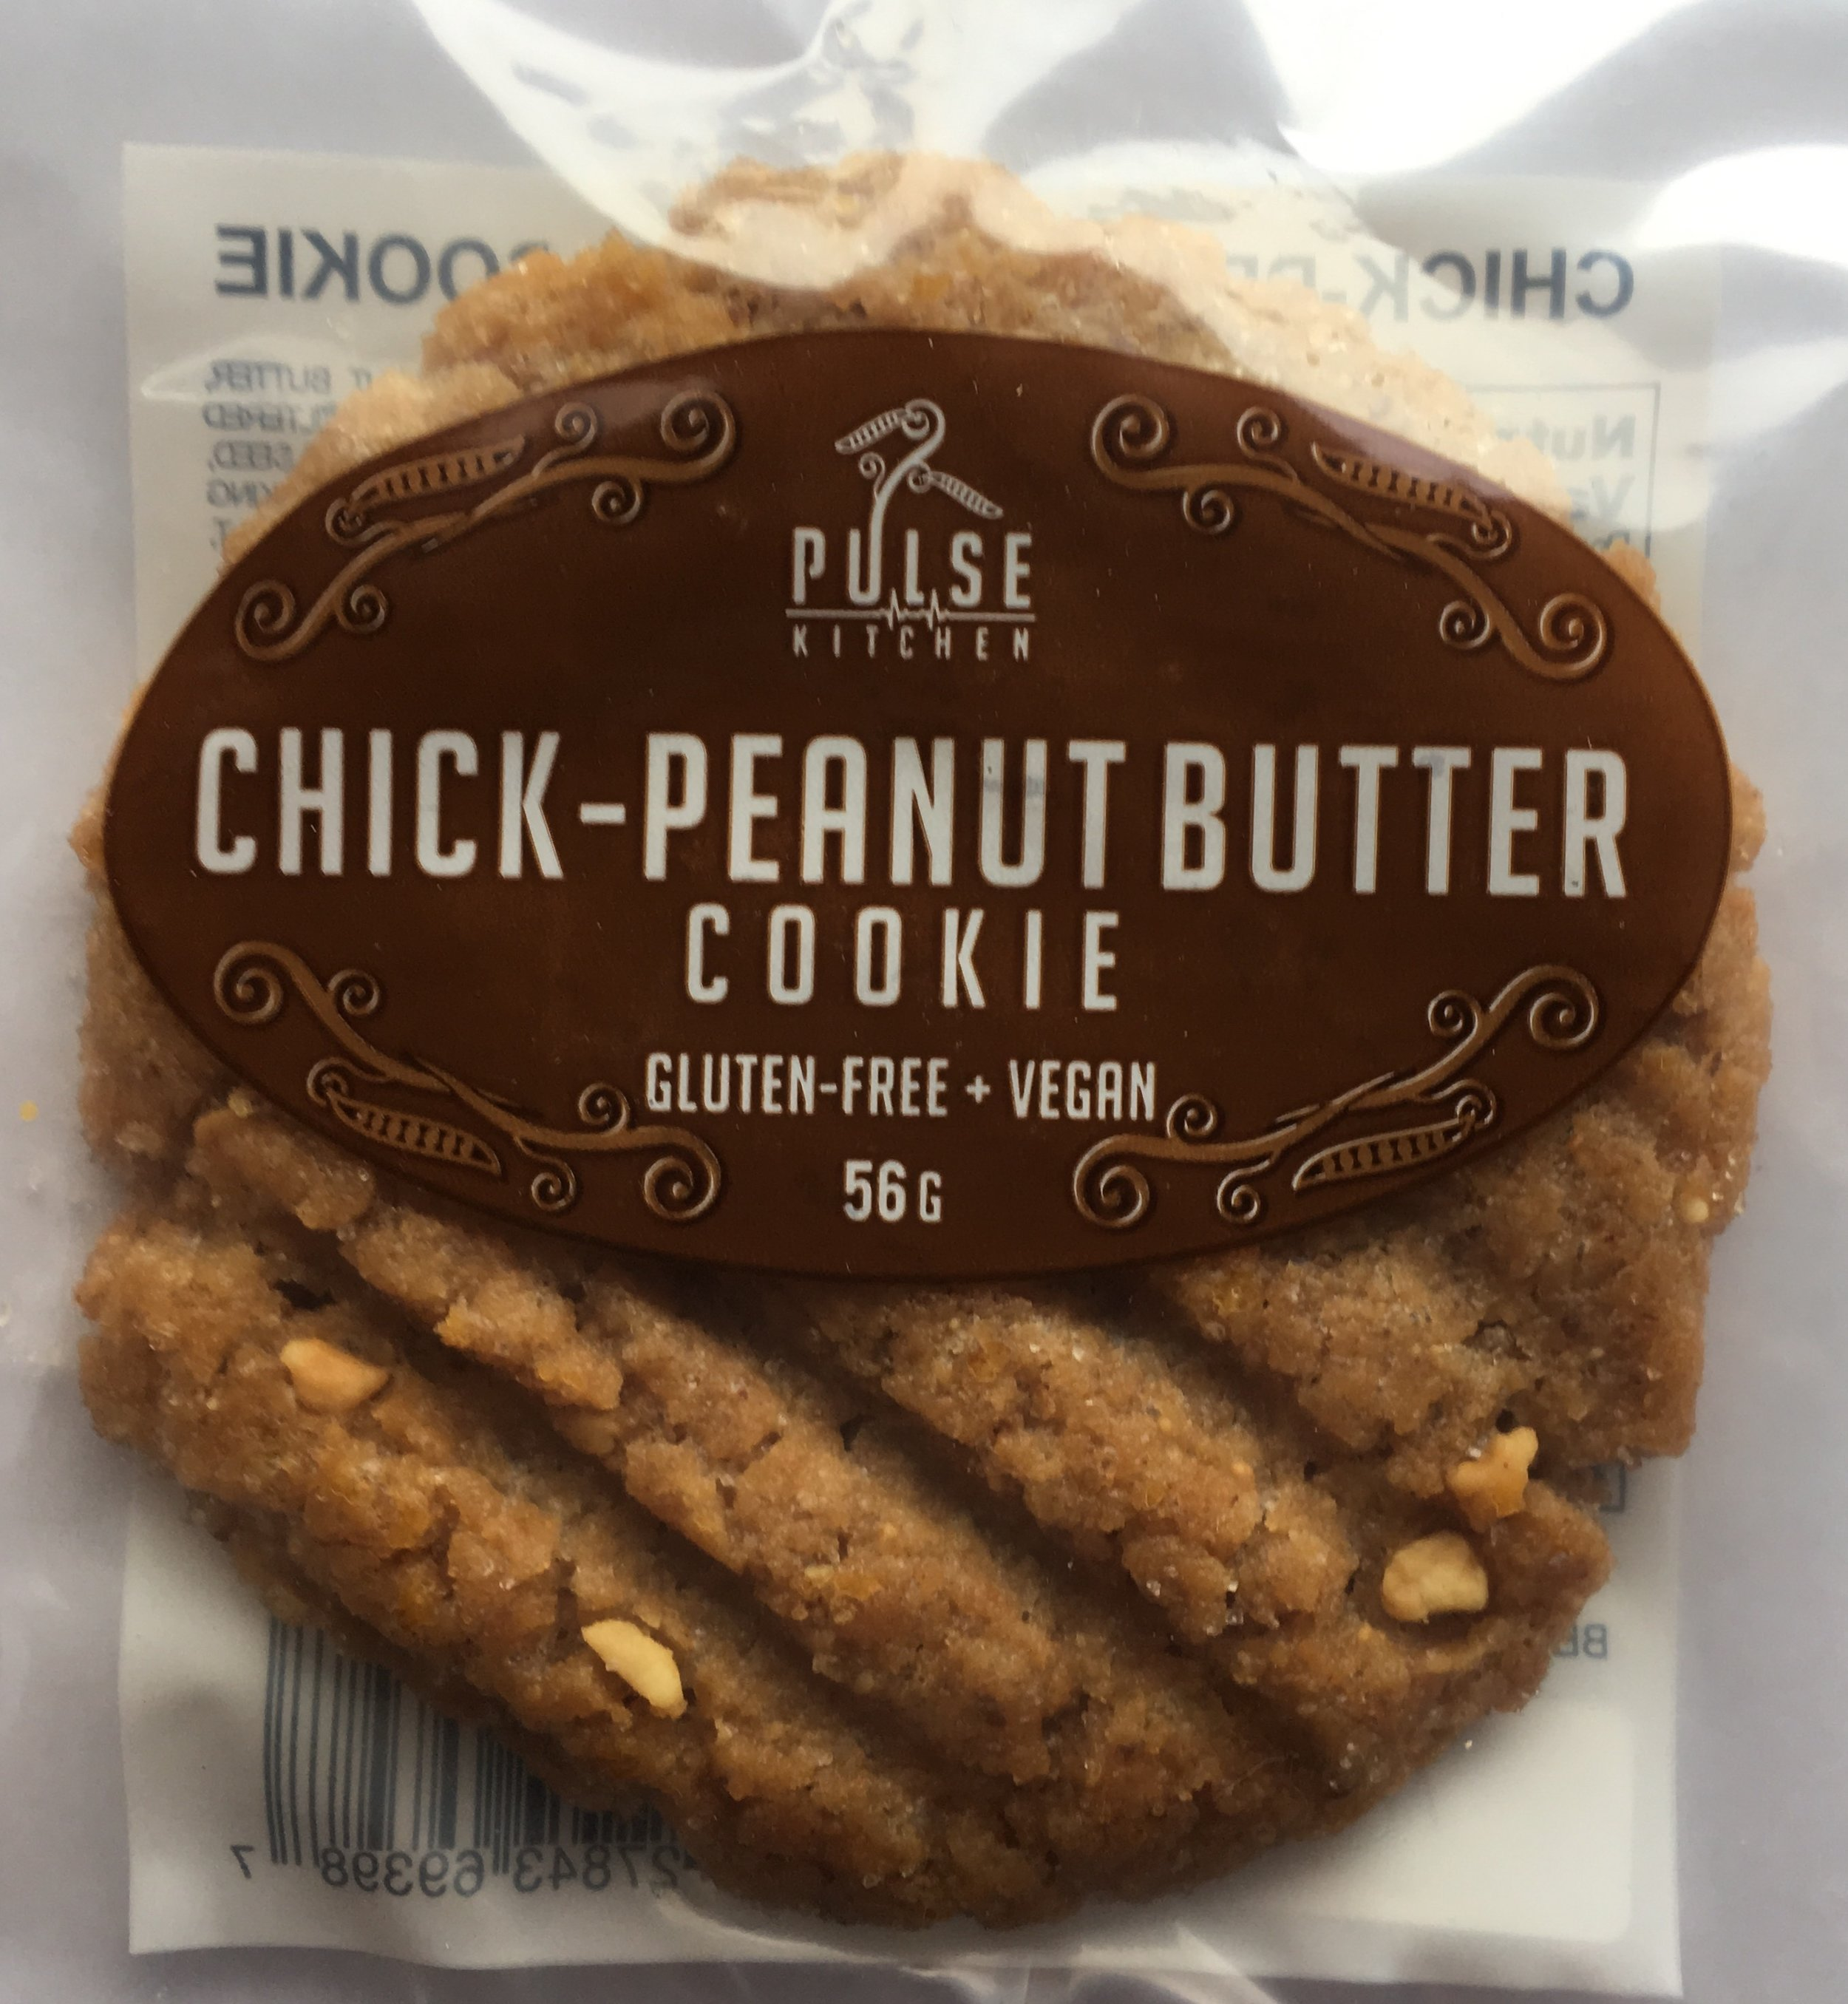 chick_peanut_butter_cookie_2.jpg